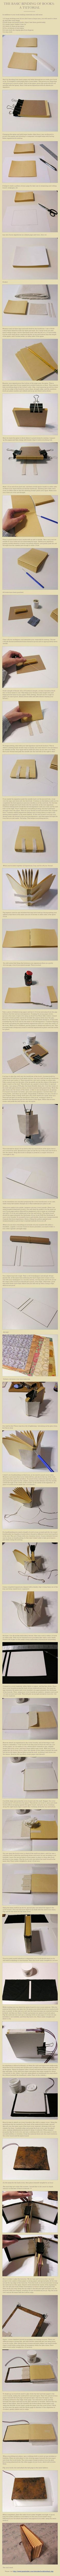 basic bookbinding: a tutorial by Jamie Butler